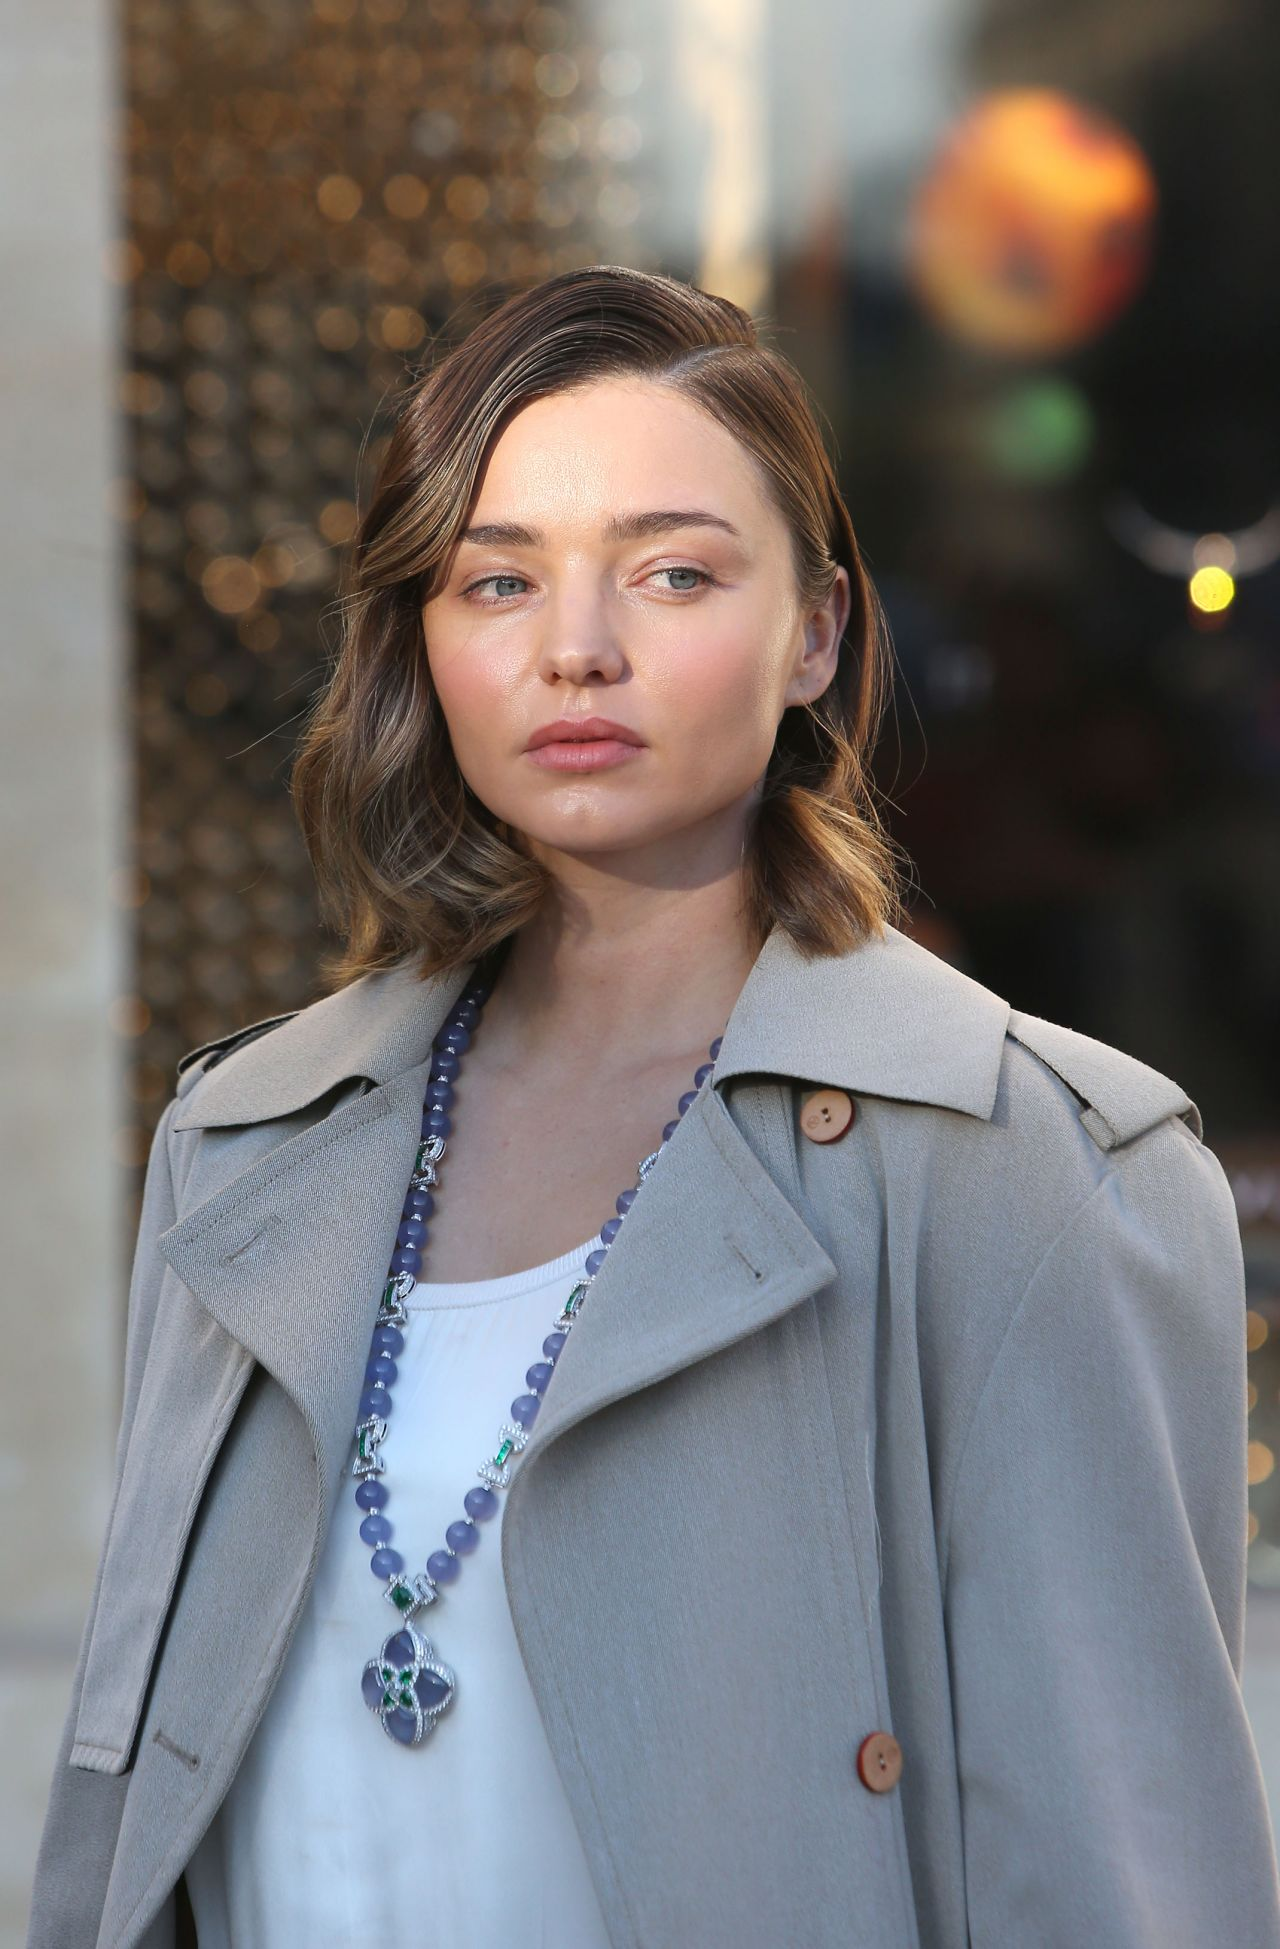 Miranda Kerr S Best Style Looks Ever: Photoshoot For Louis Vuitton In Paris 10/4/2016